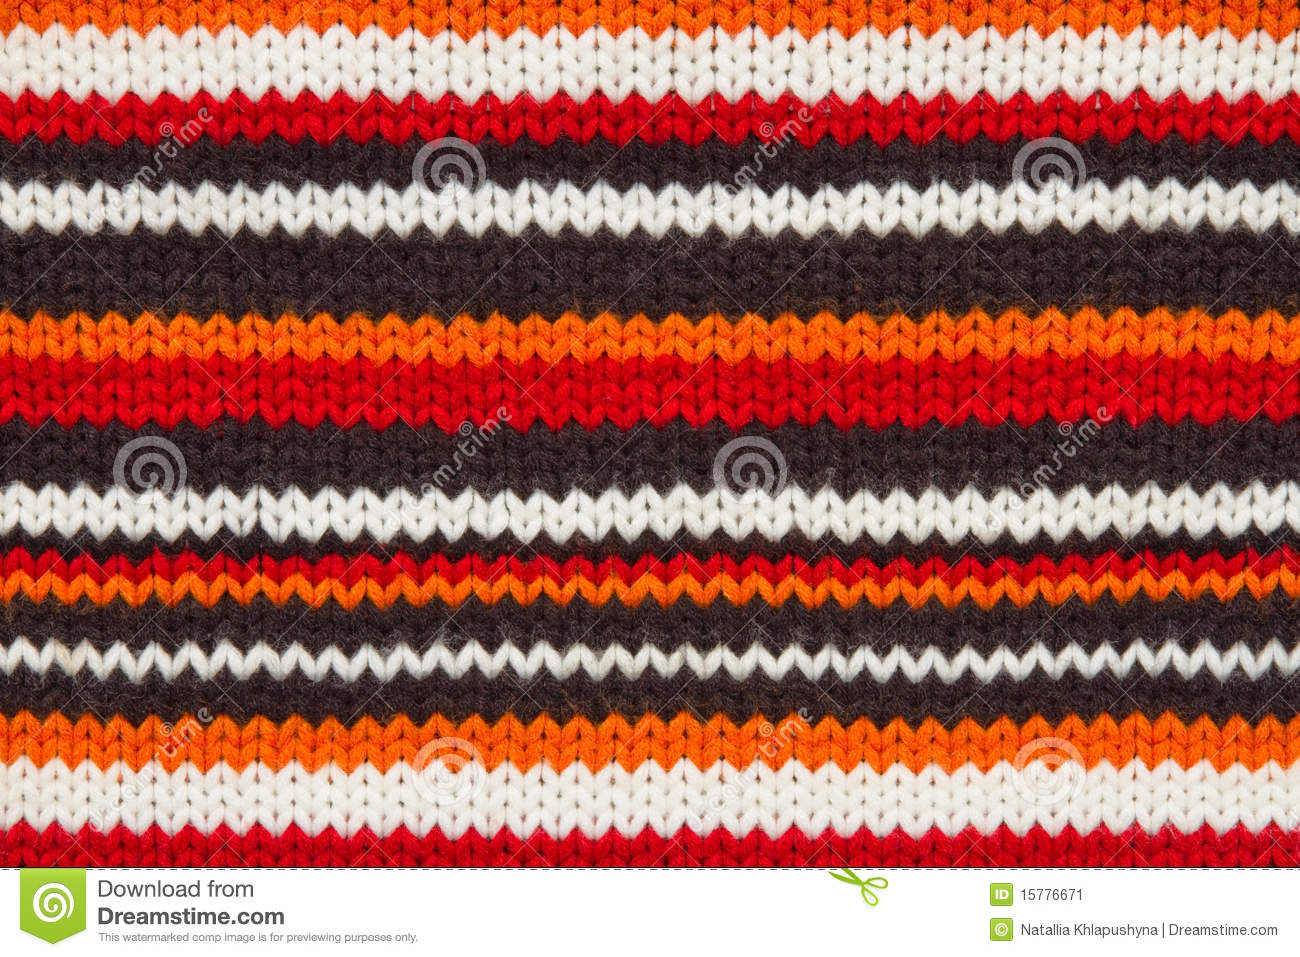 Knit Sweater Texture. Orange, Black And White Stock Image - Image ...